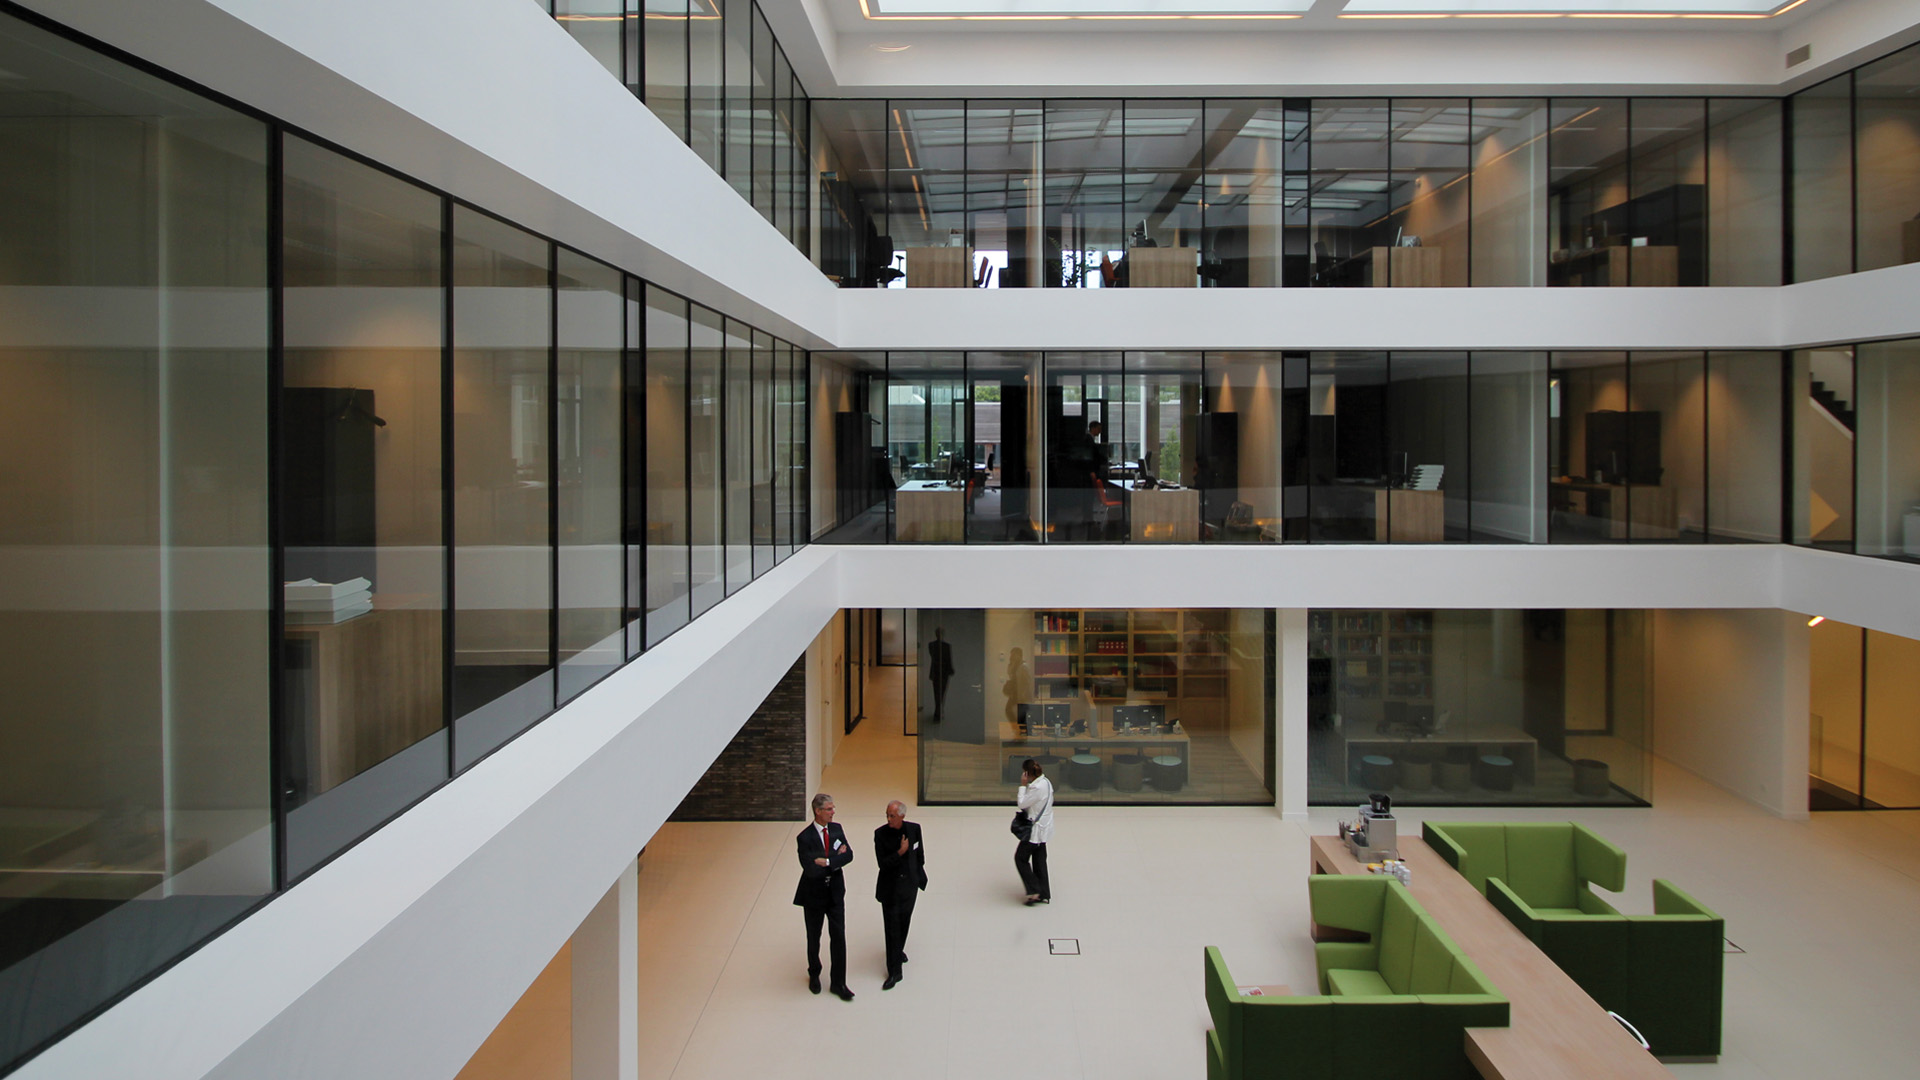 Steel glazed windows in the accountancy office of WVDB in the Netherlands